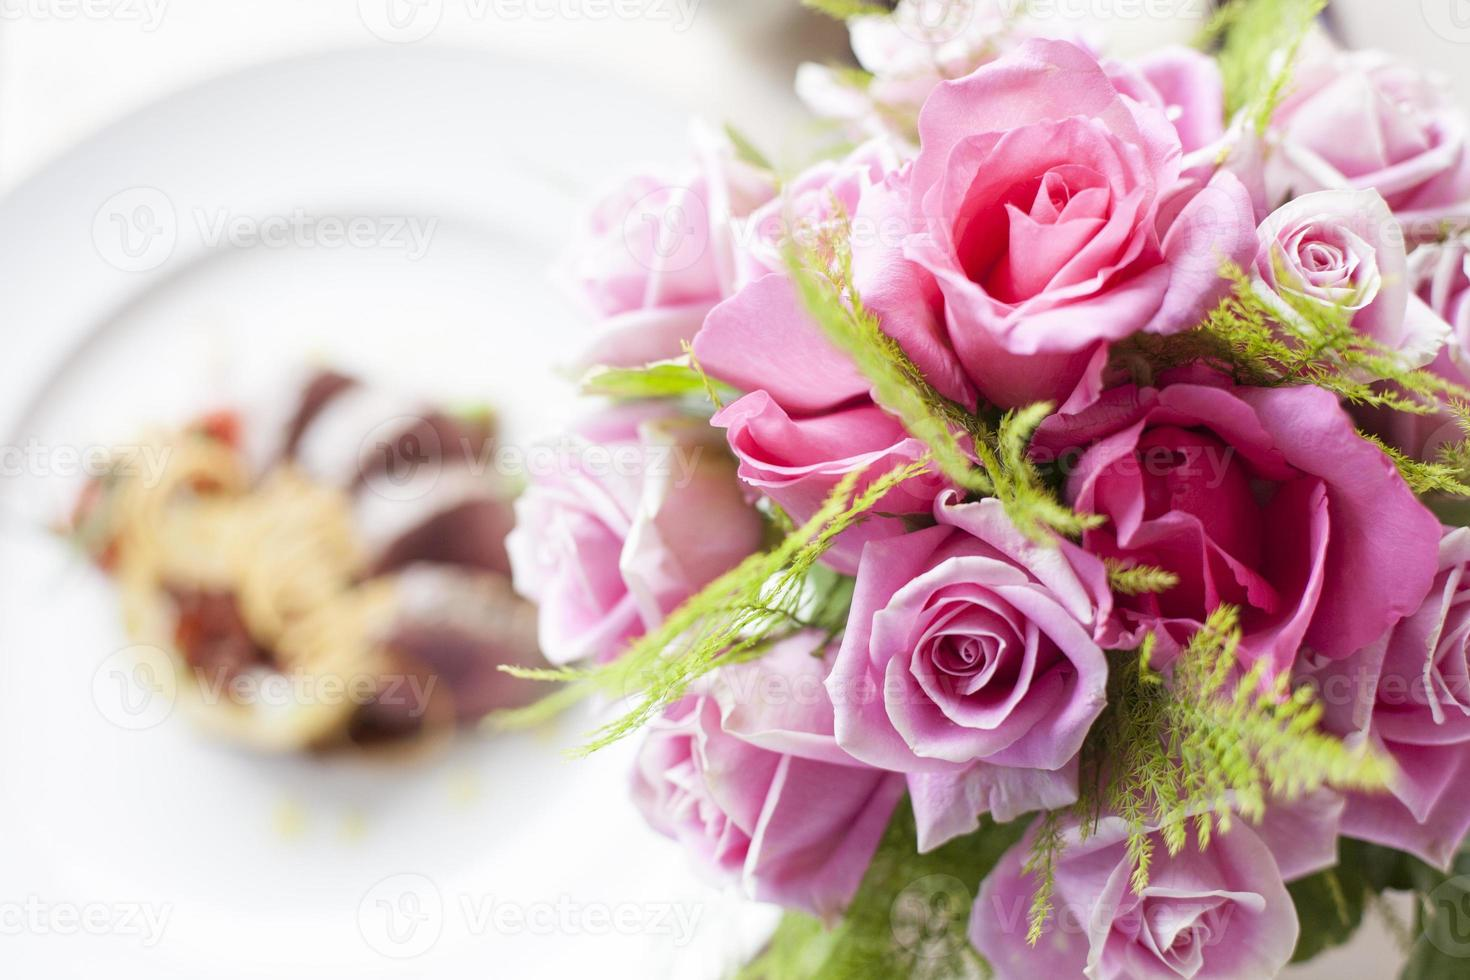 Pink rose flower on front of Beef medallions photo